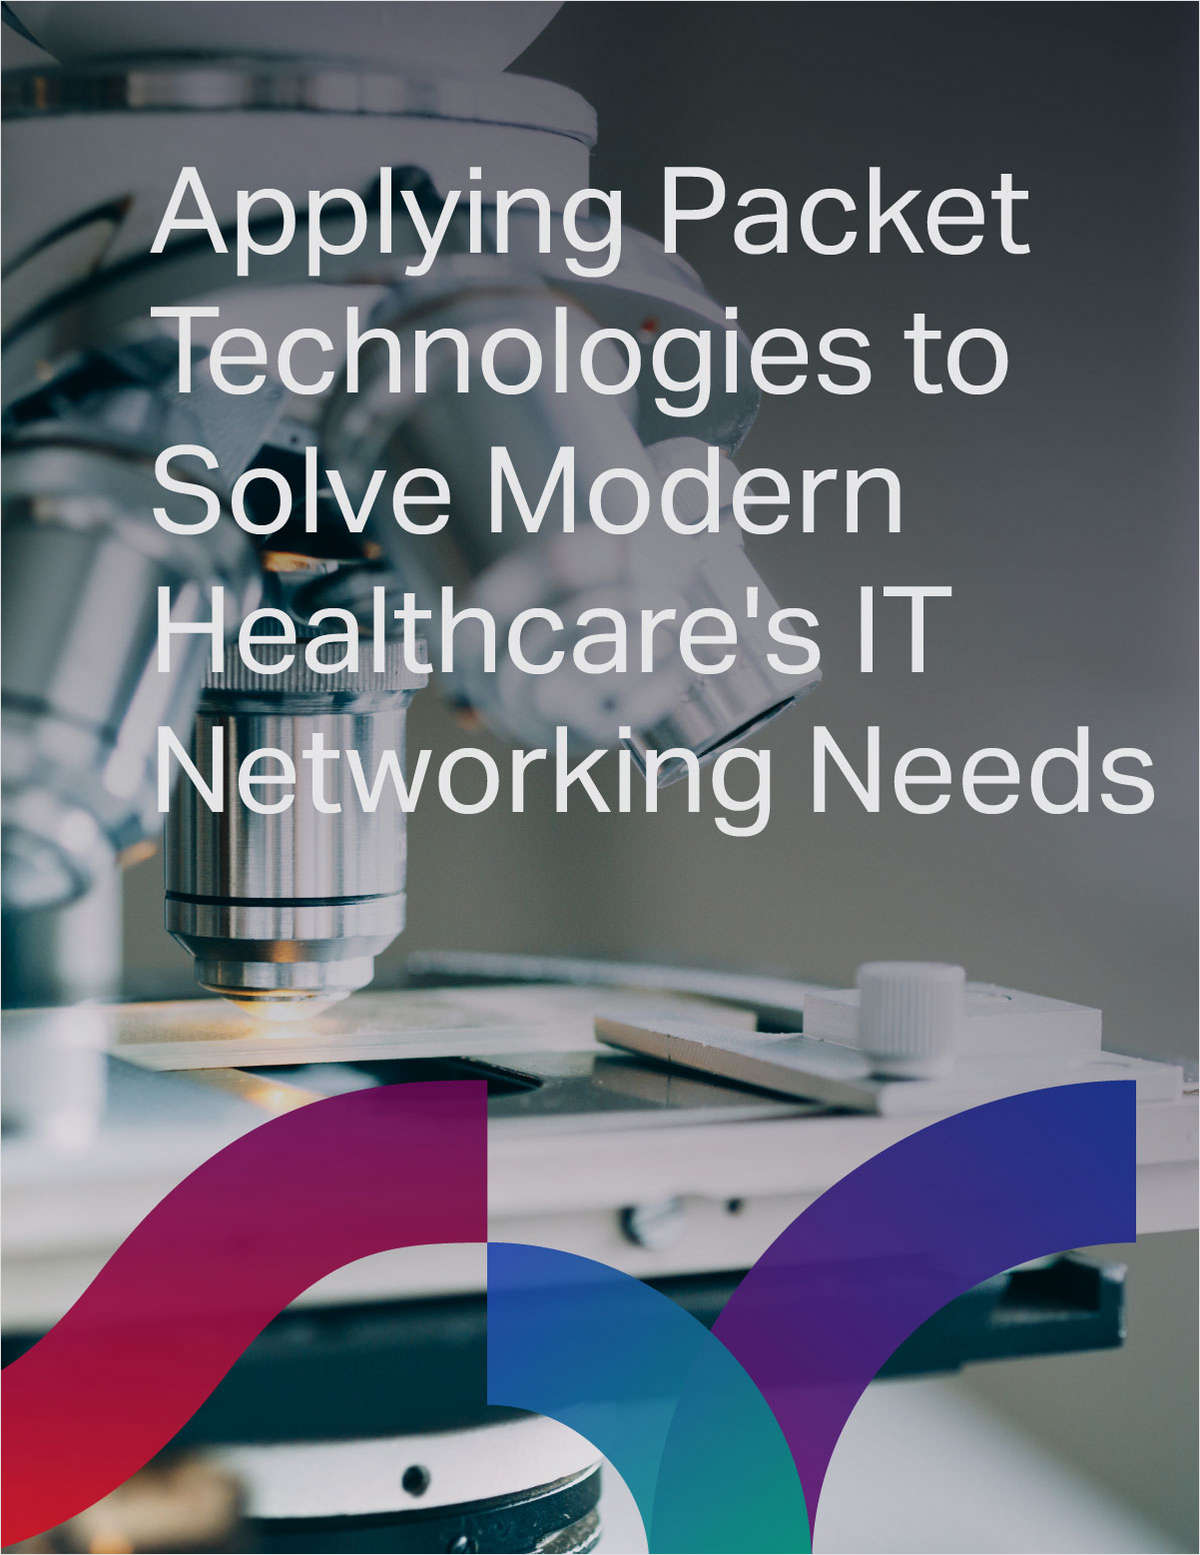 Applying Packet Technologies to Solve Modern Healthcare's IT Networking Needs